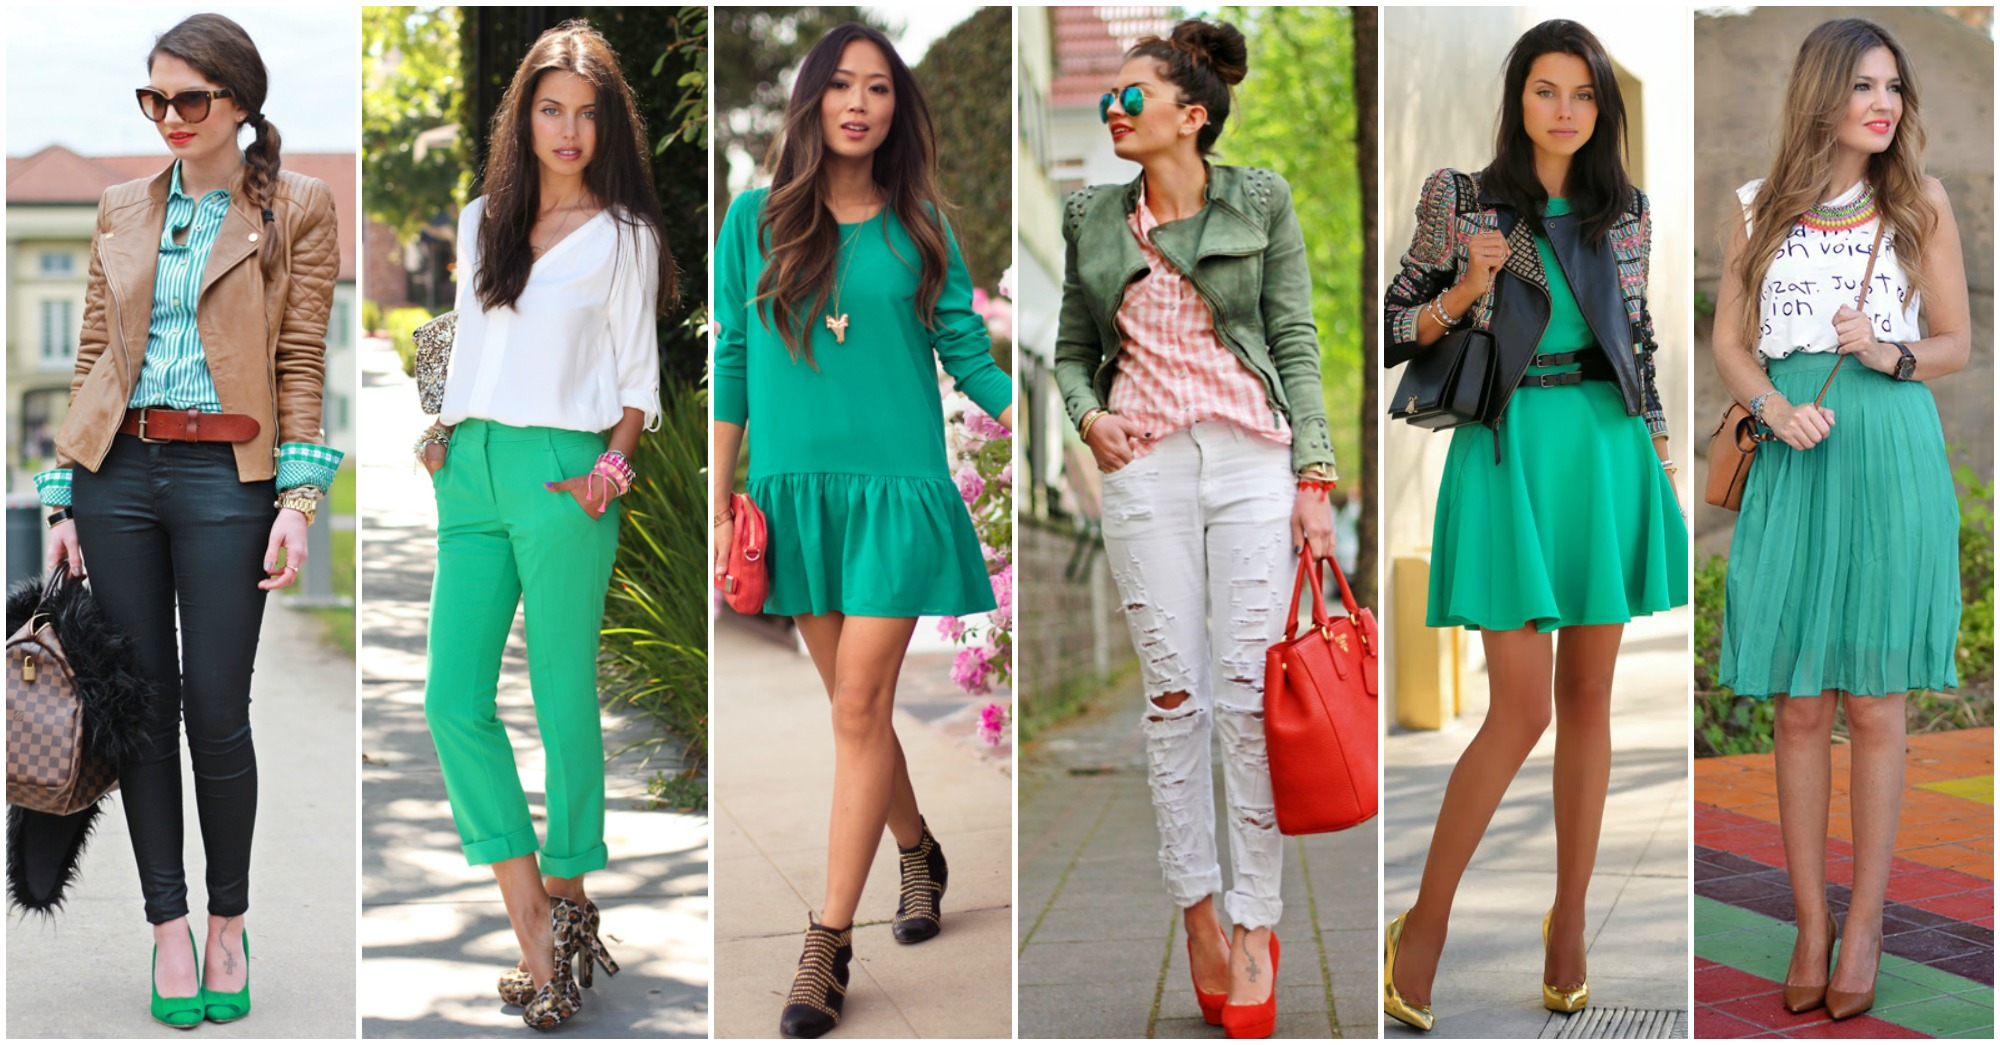 15 Fashionable Outfits for St. Patrick's Day